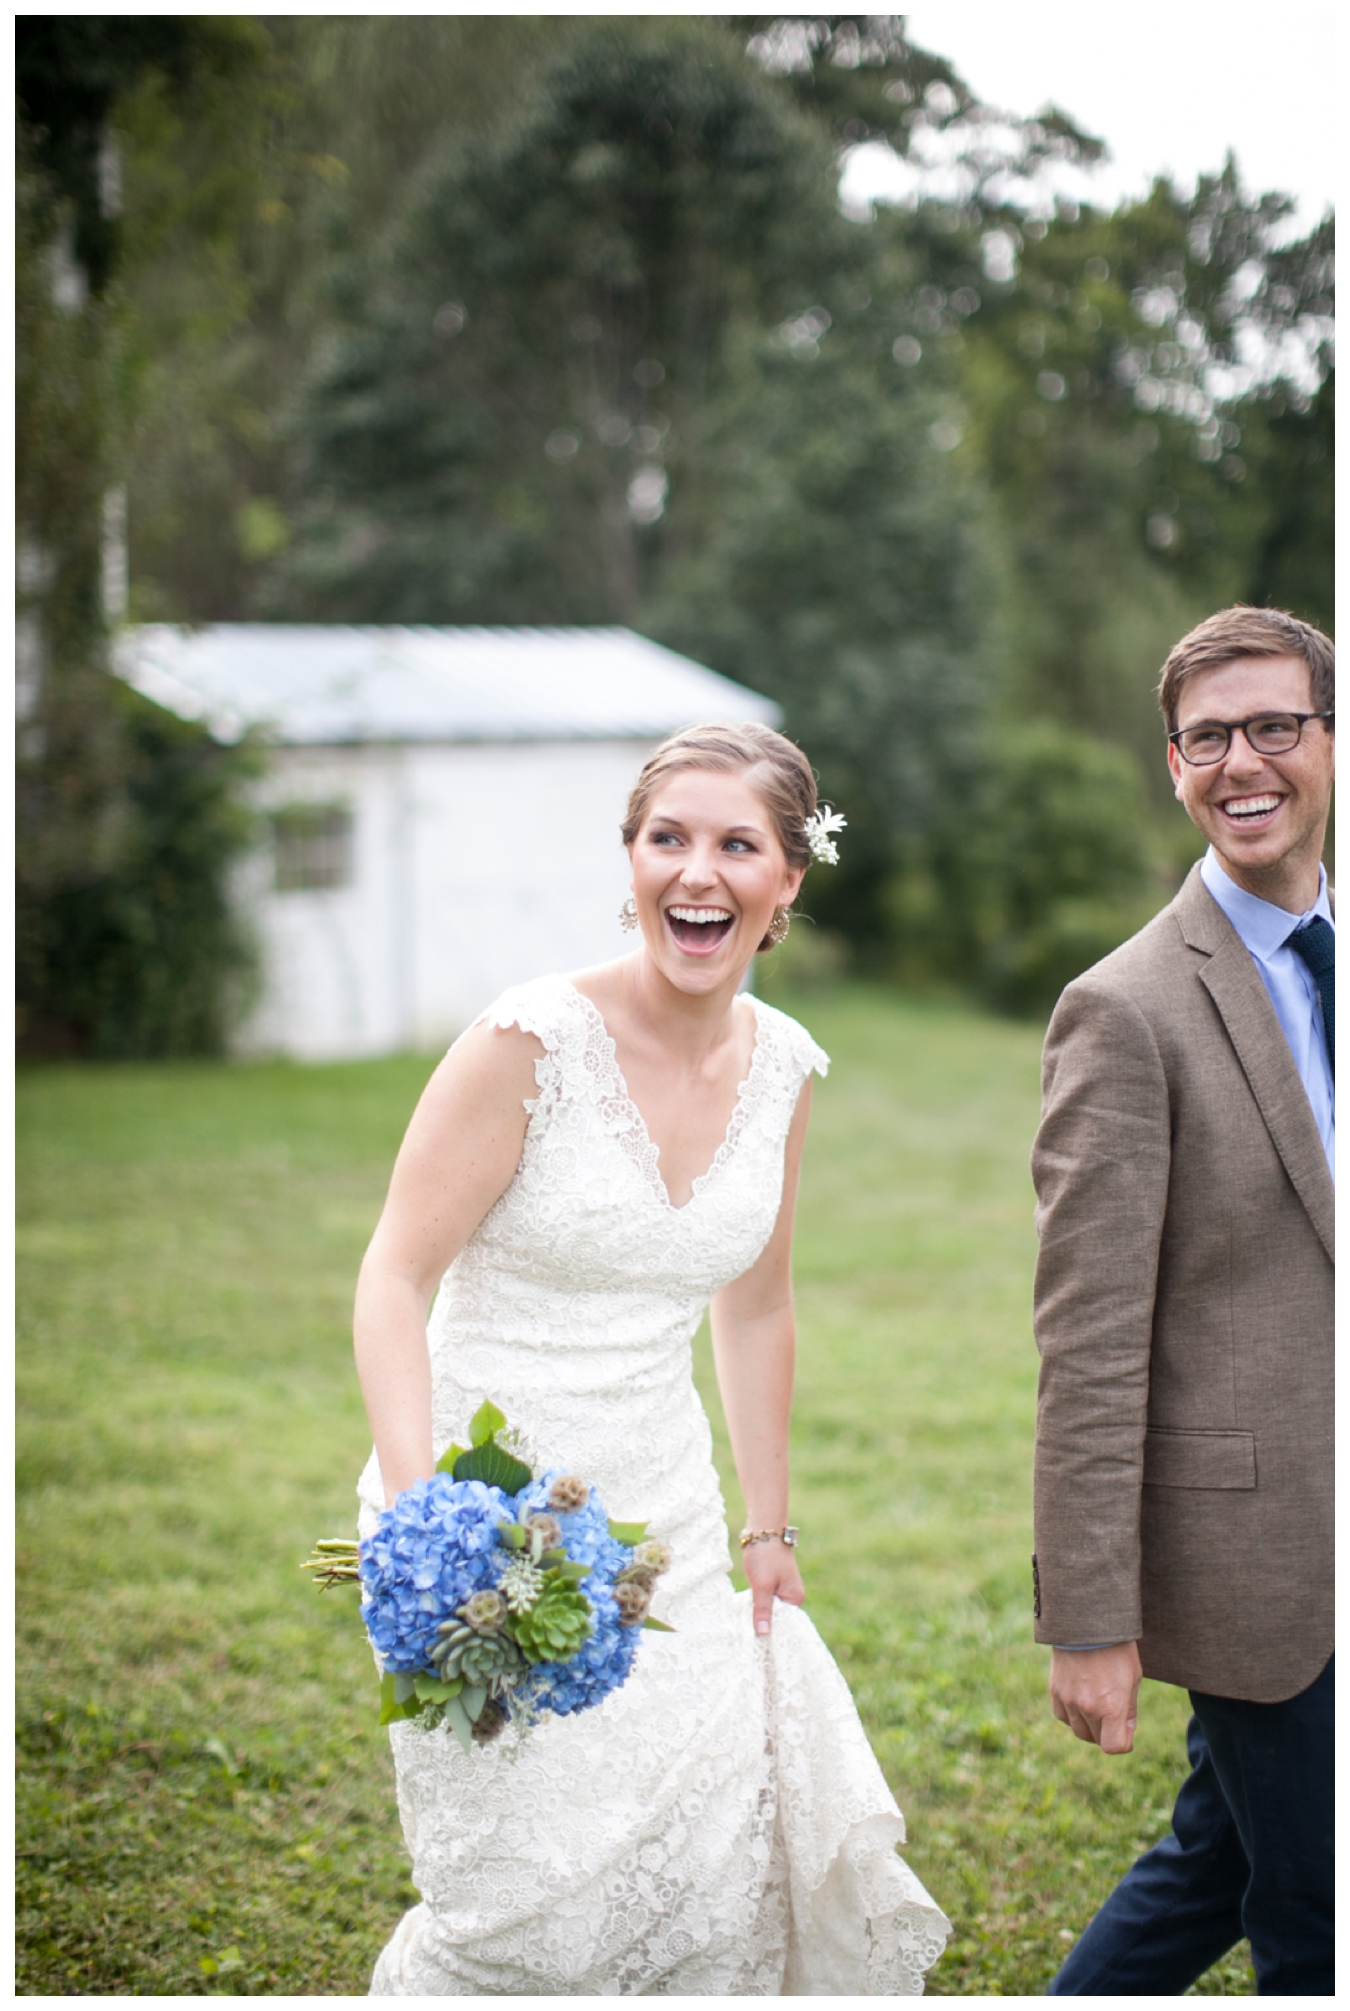 Lily Glass Photography Columbus, Ohio | Skipping Rock Farm WeddingLily Glass Photography Columbus, Ohio | Skipping Rock Farm Wedding